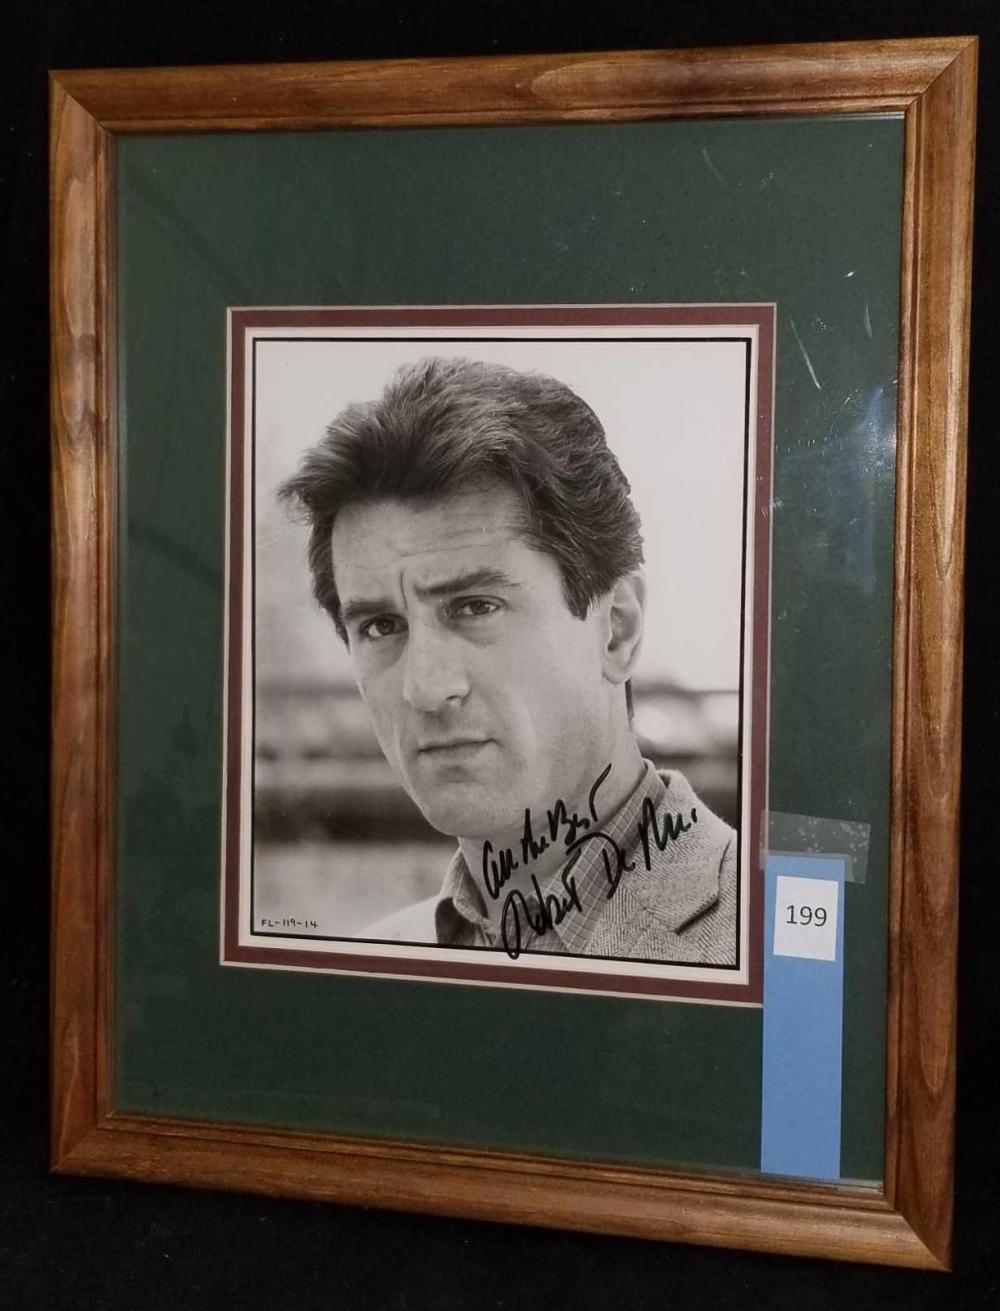 ROBERT DE NIRO SIGNED BLACK & WHITE PUBLICITY PHOTO